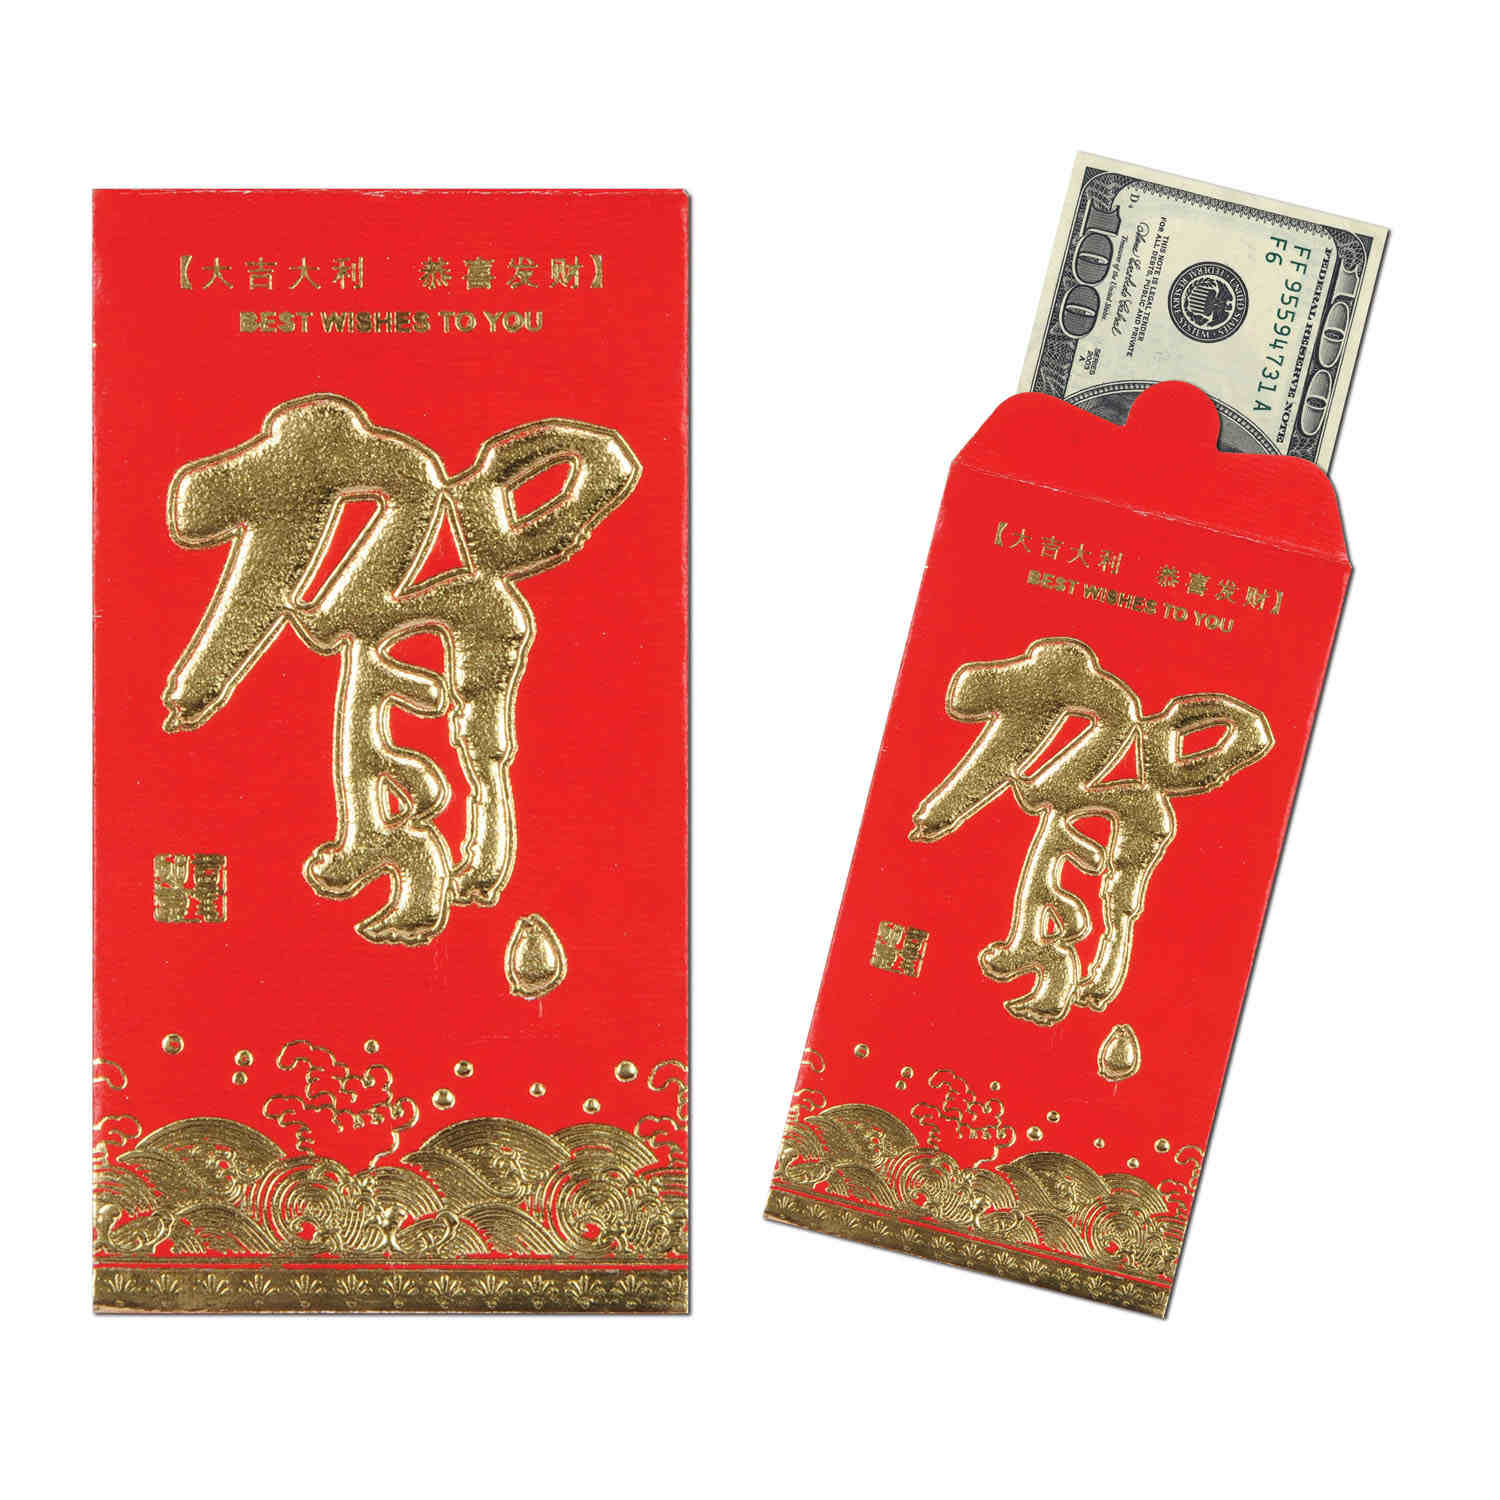 money envelopes for the chinese new year in red with chinese characters on them